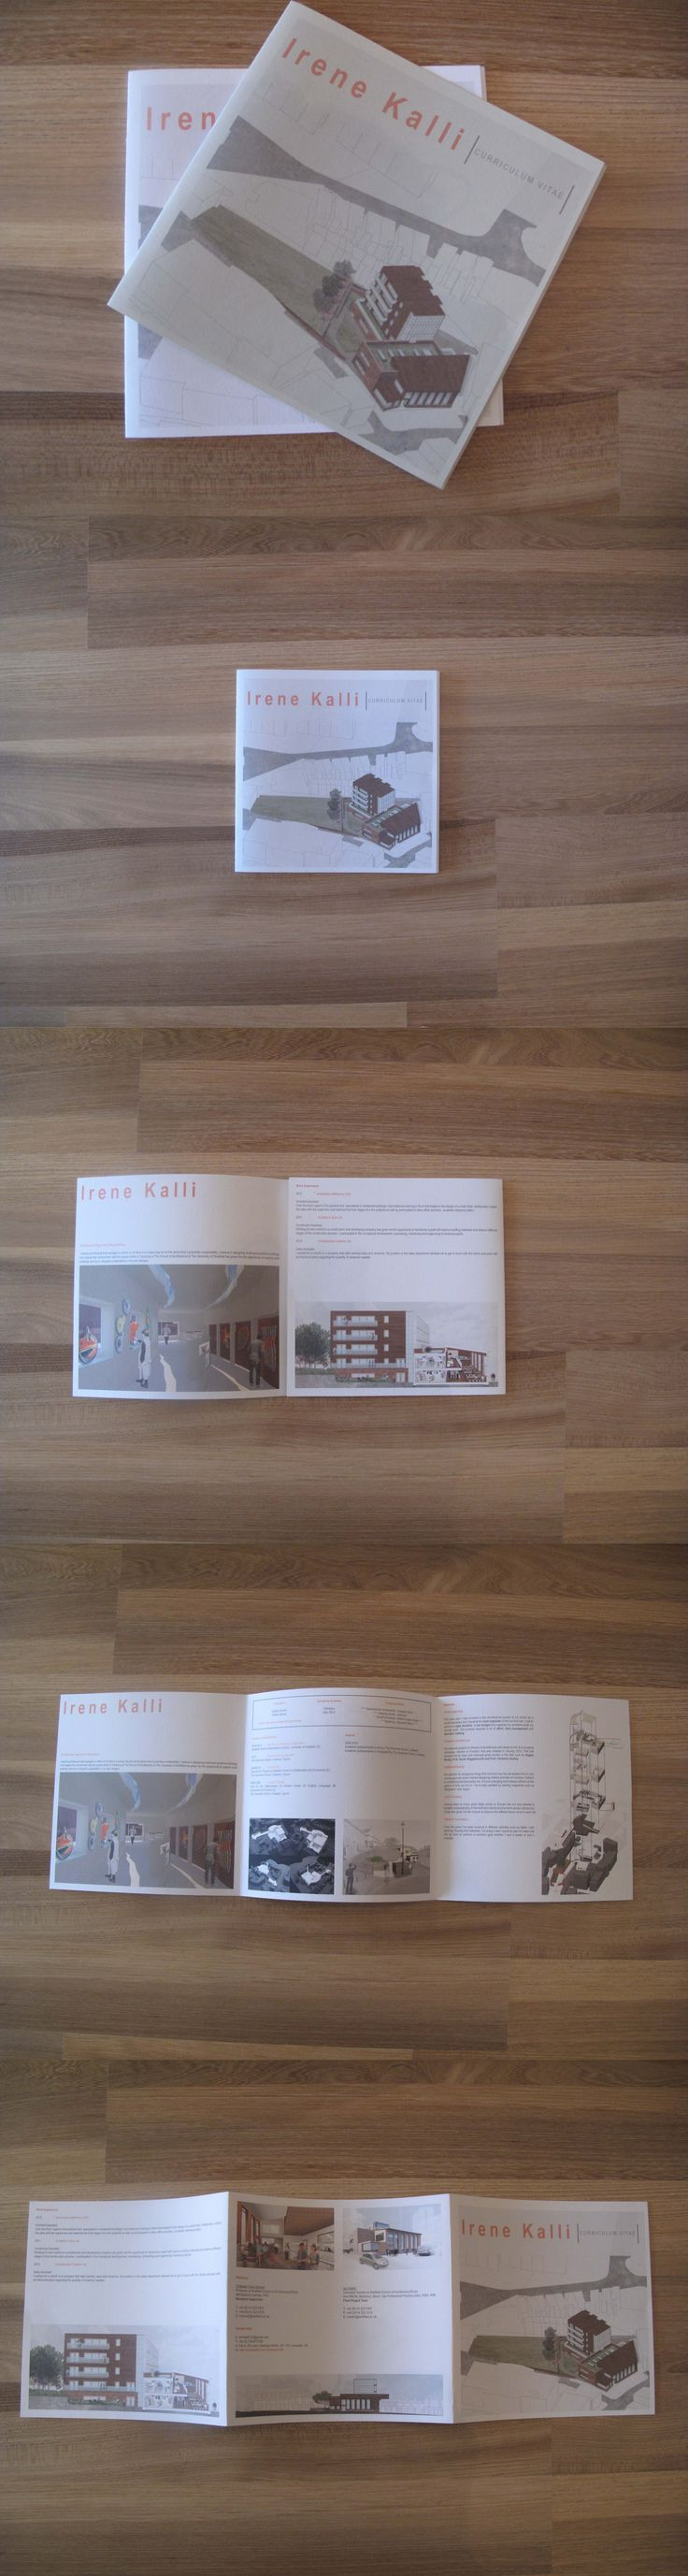 architecture cv and example of work booklet